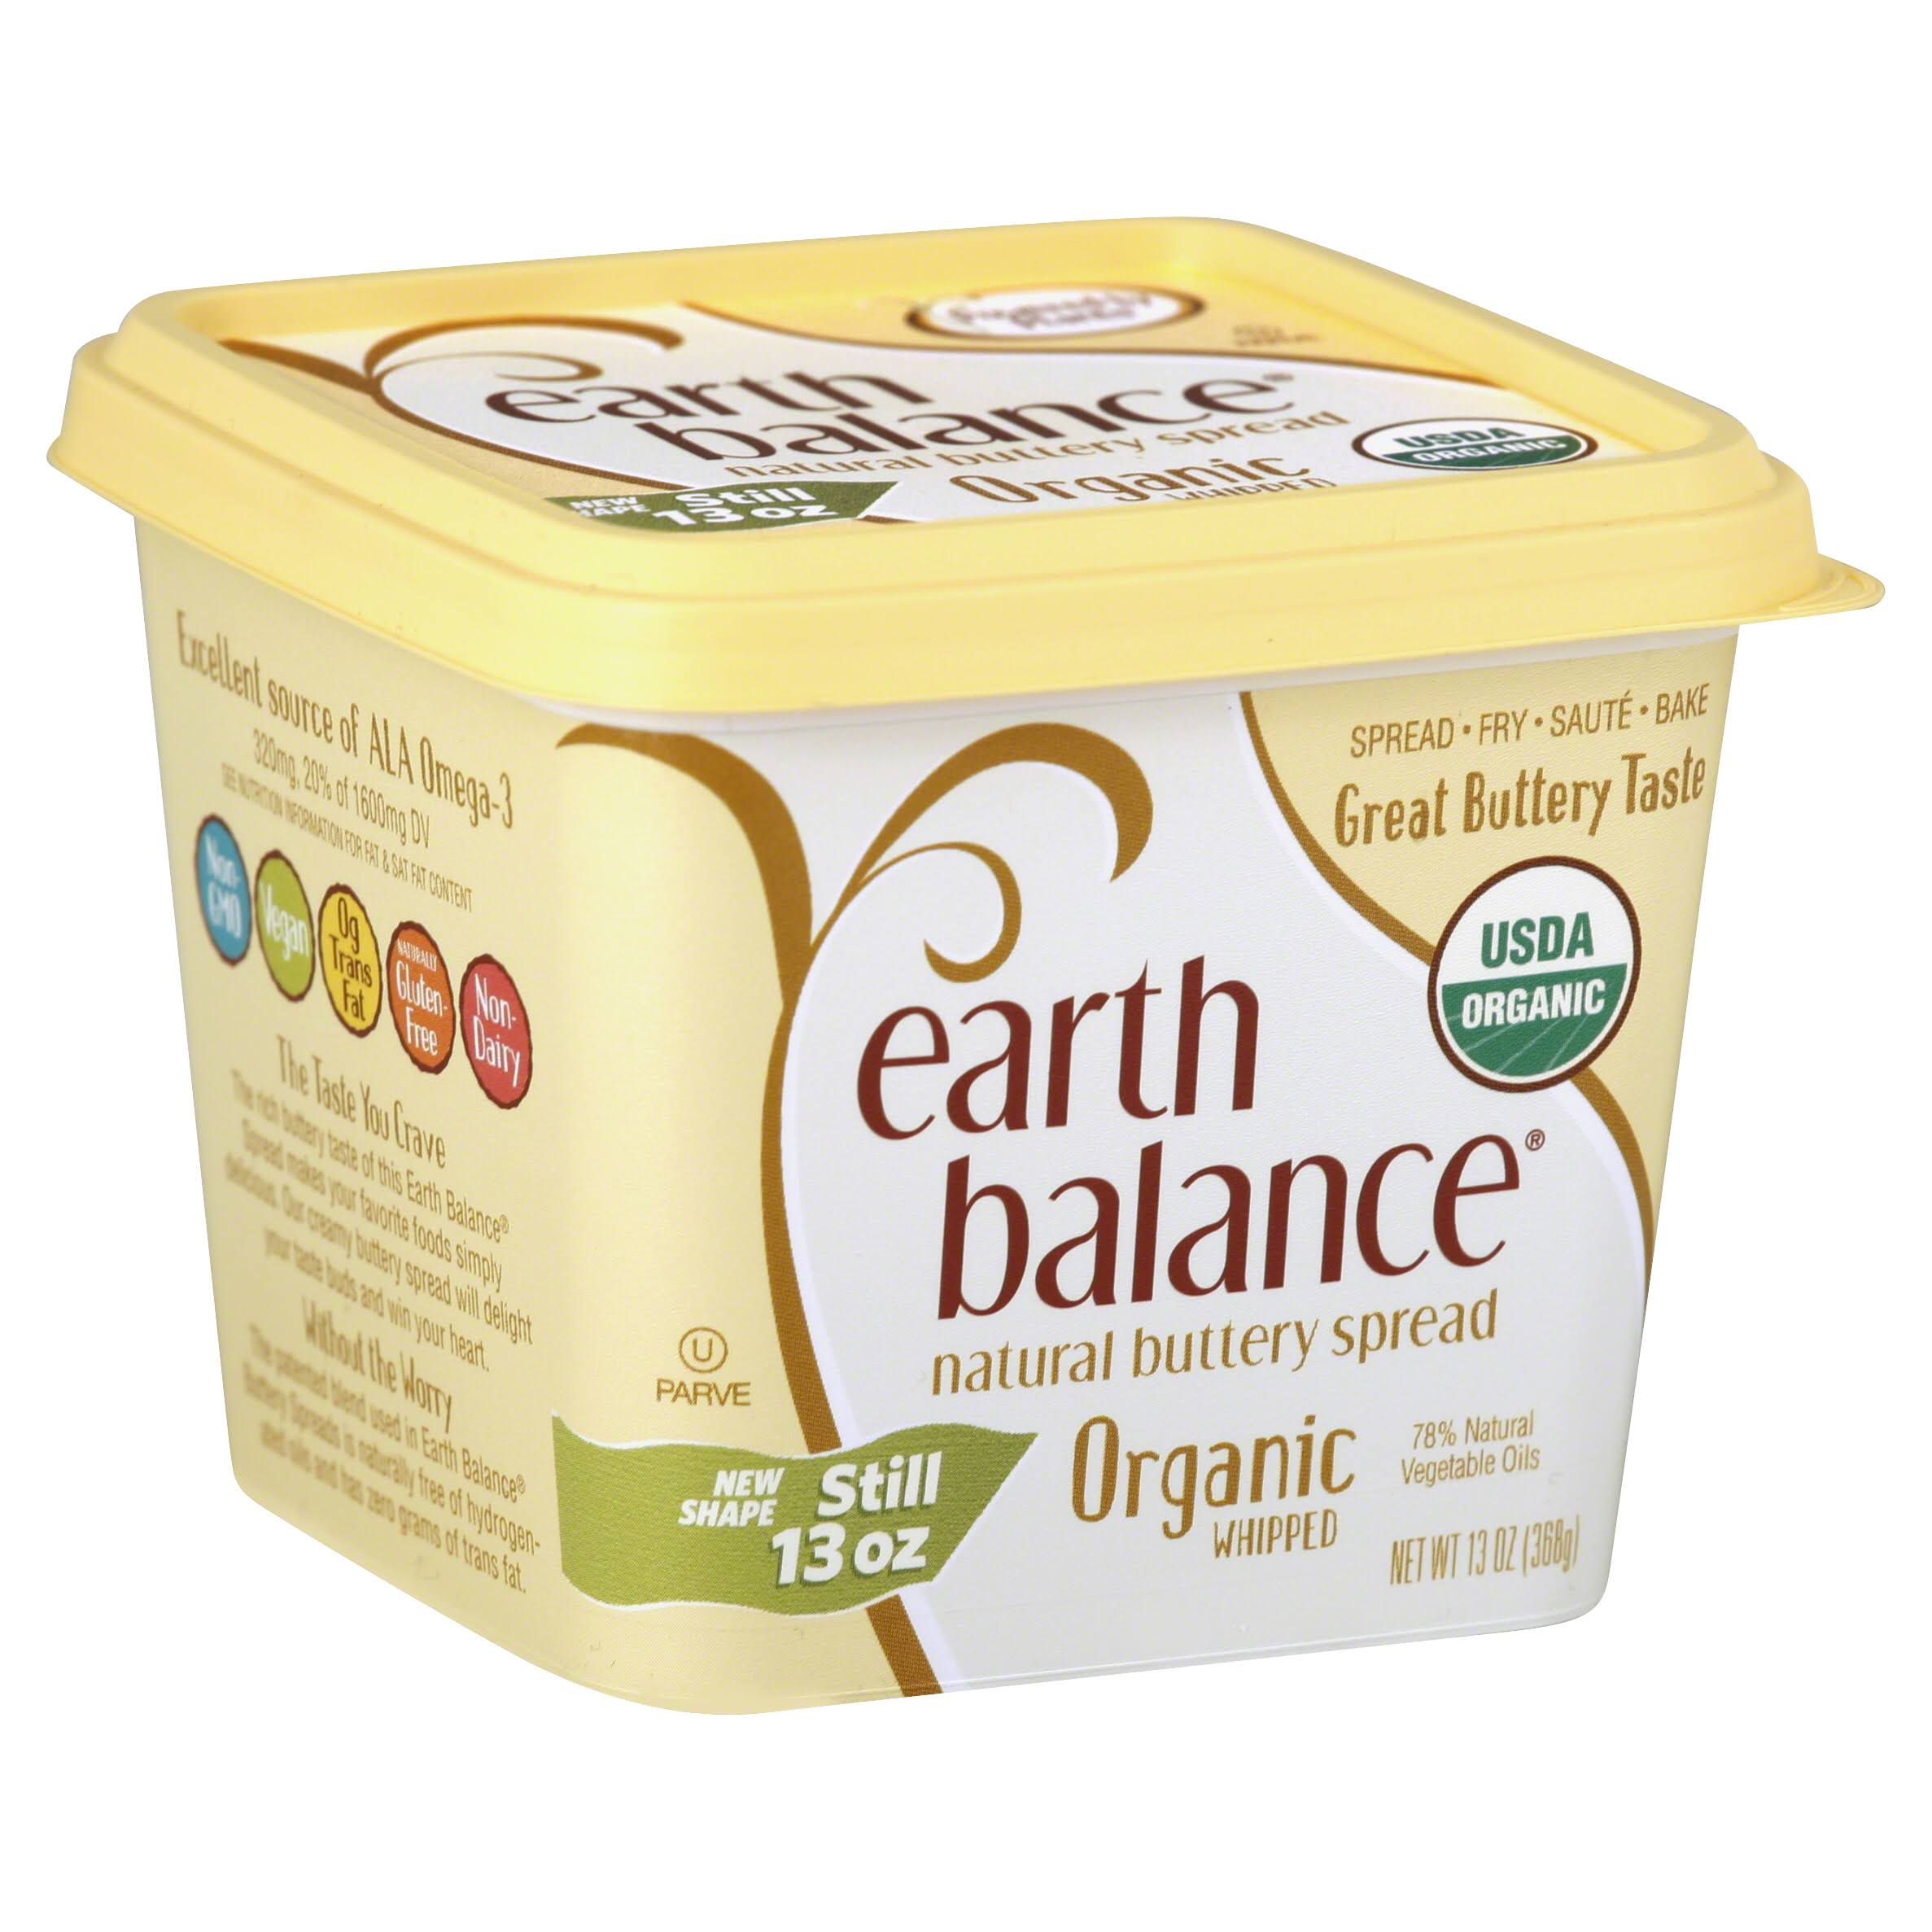 Earth Balance Natural Buttery Spread - 368g